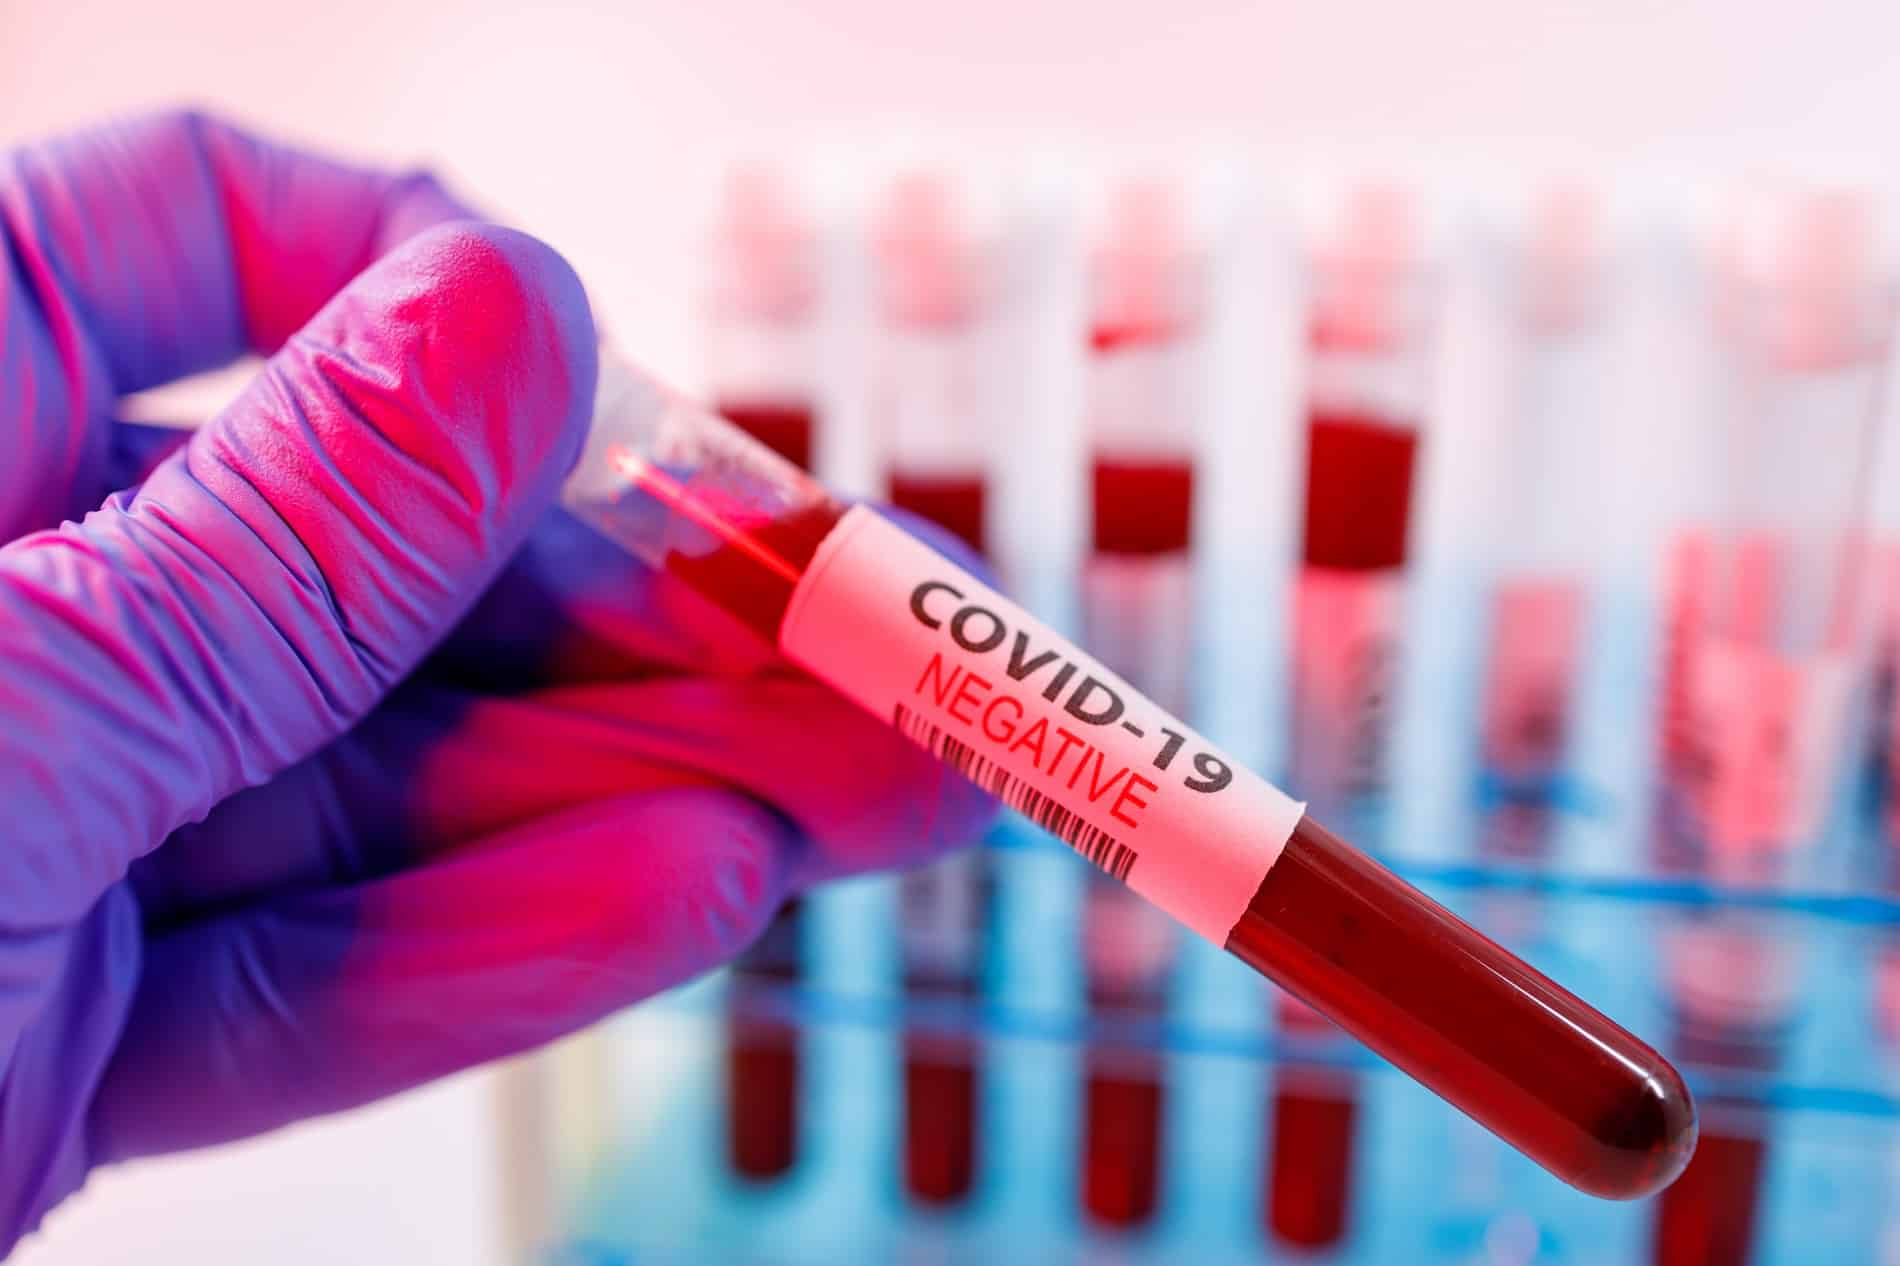 More than 70% of Coronavirus cases in China have recovered – WHO